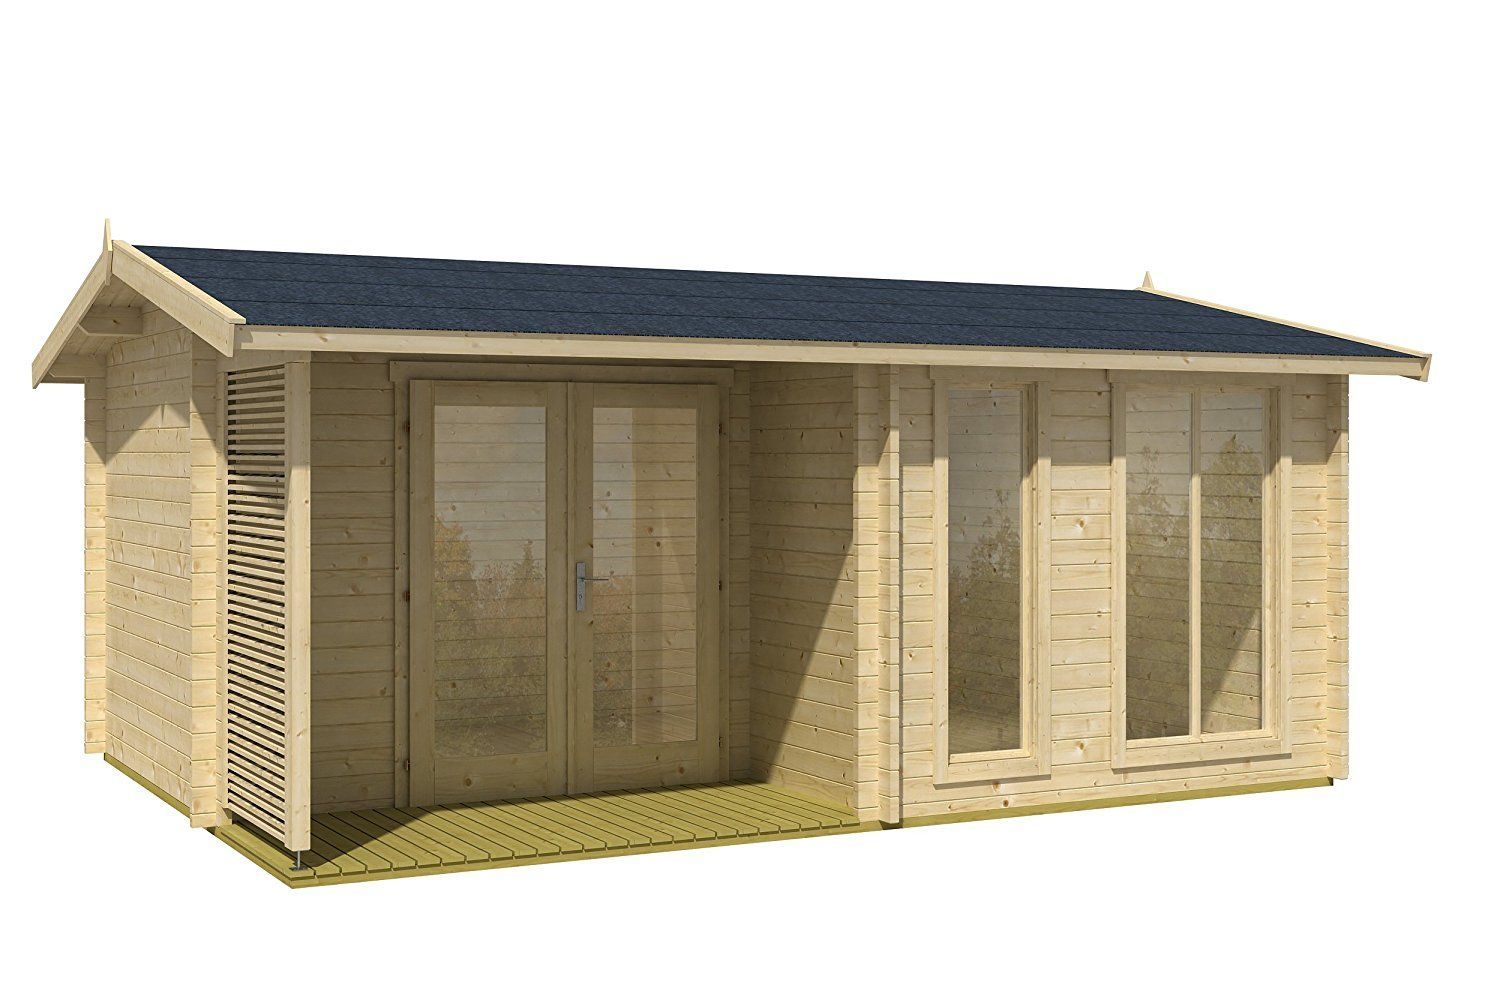 Allwood Sommersby Garden House Kit Small Space Living